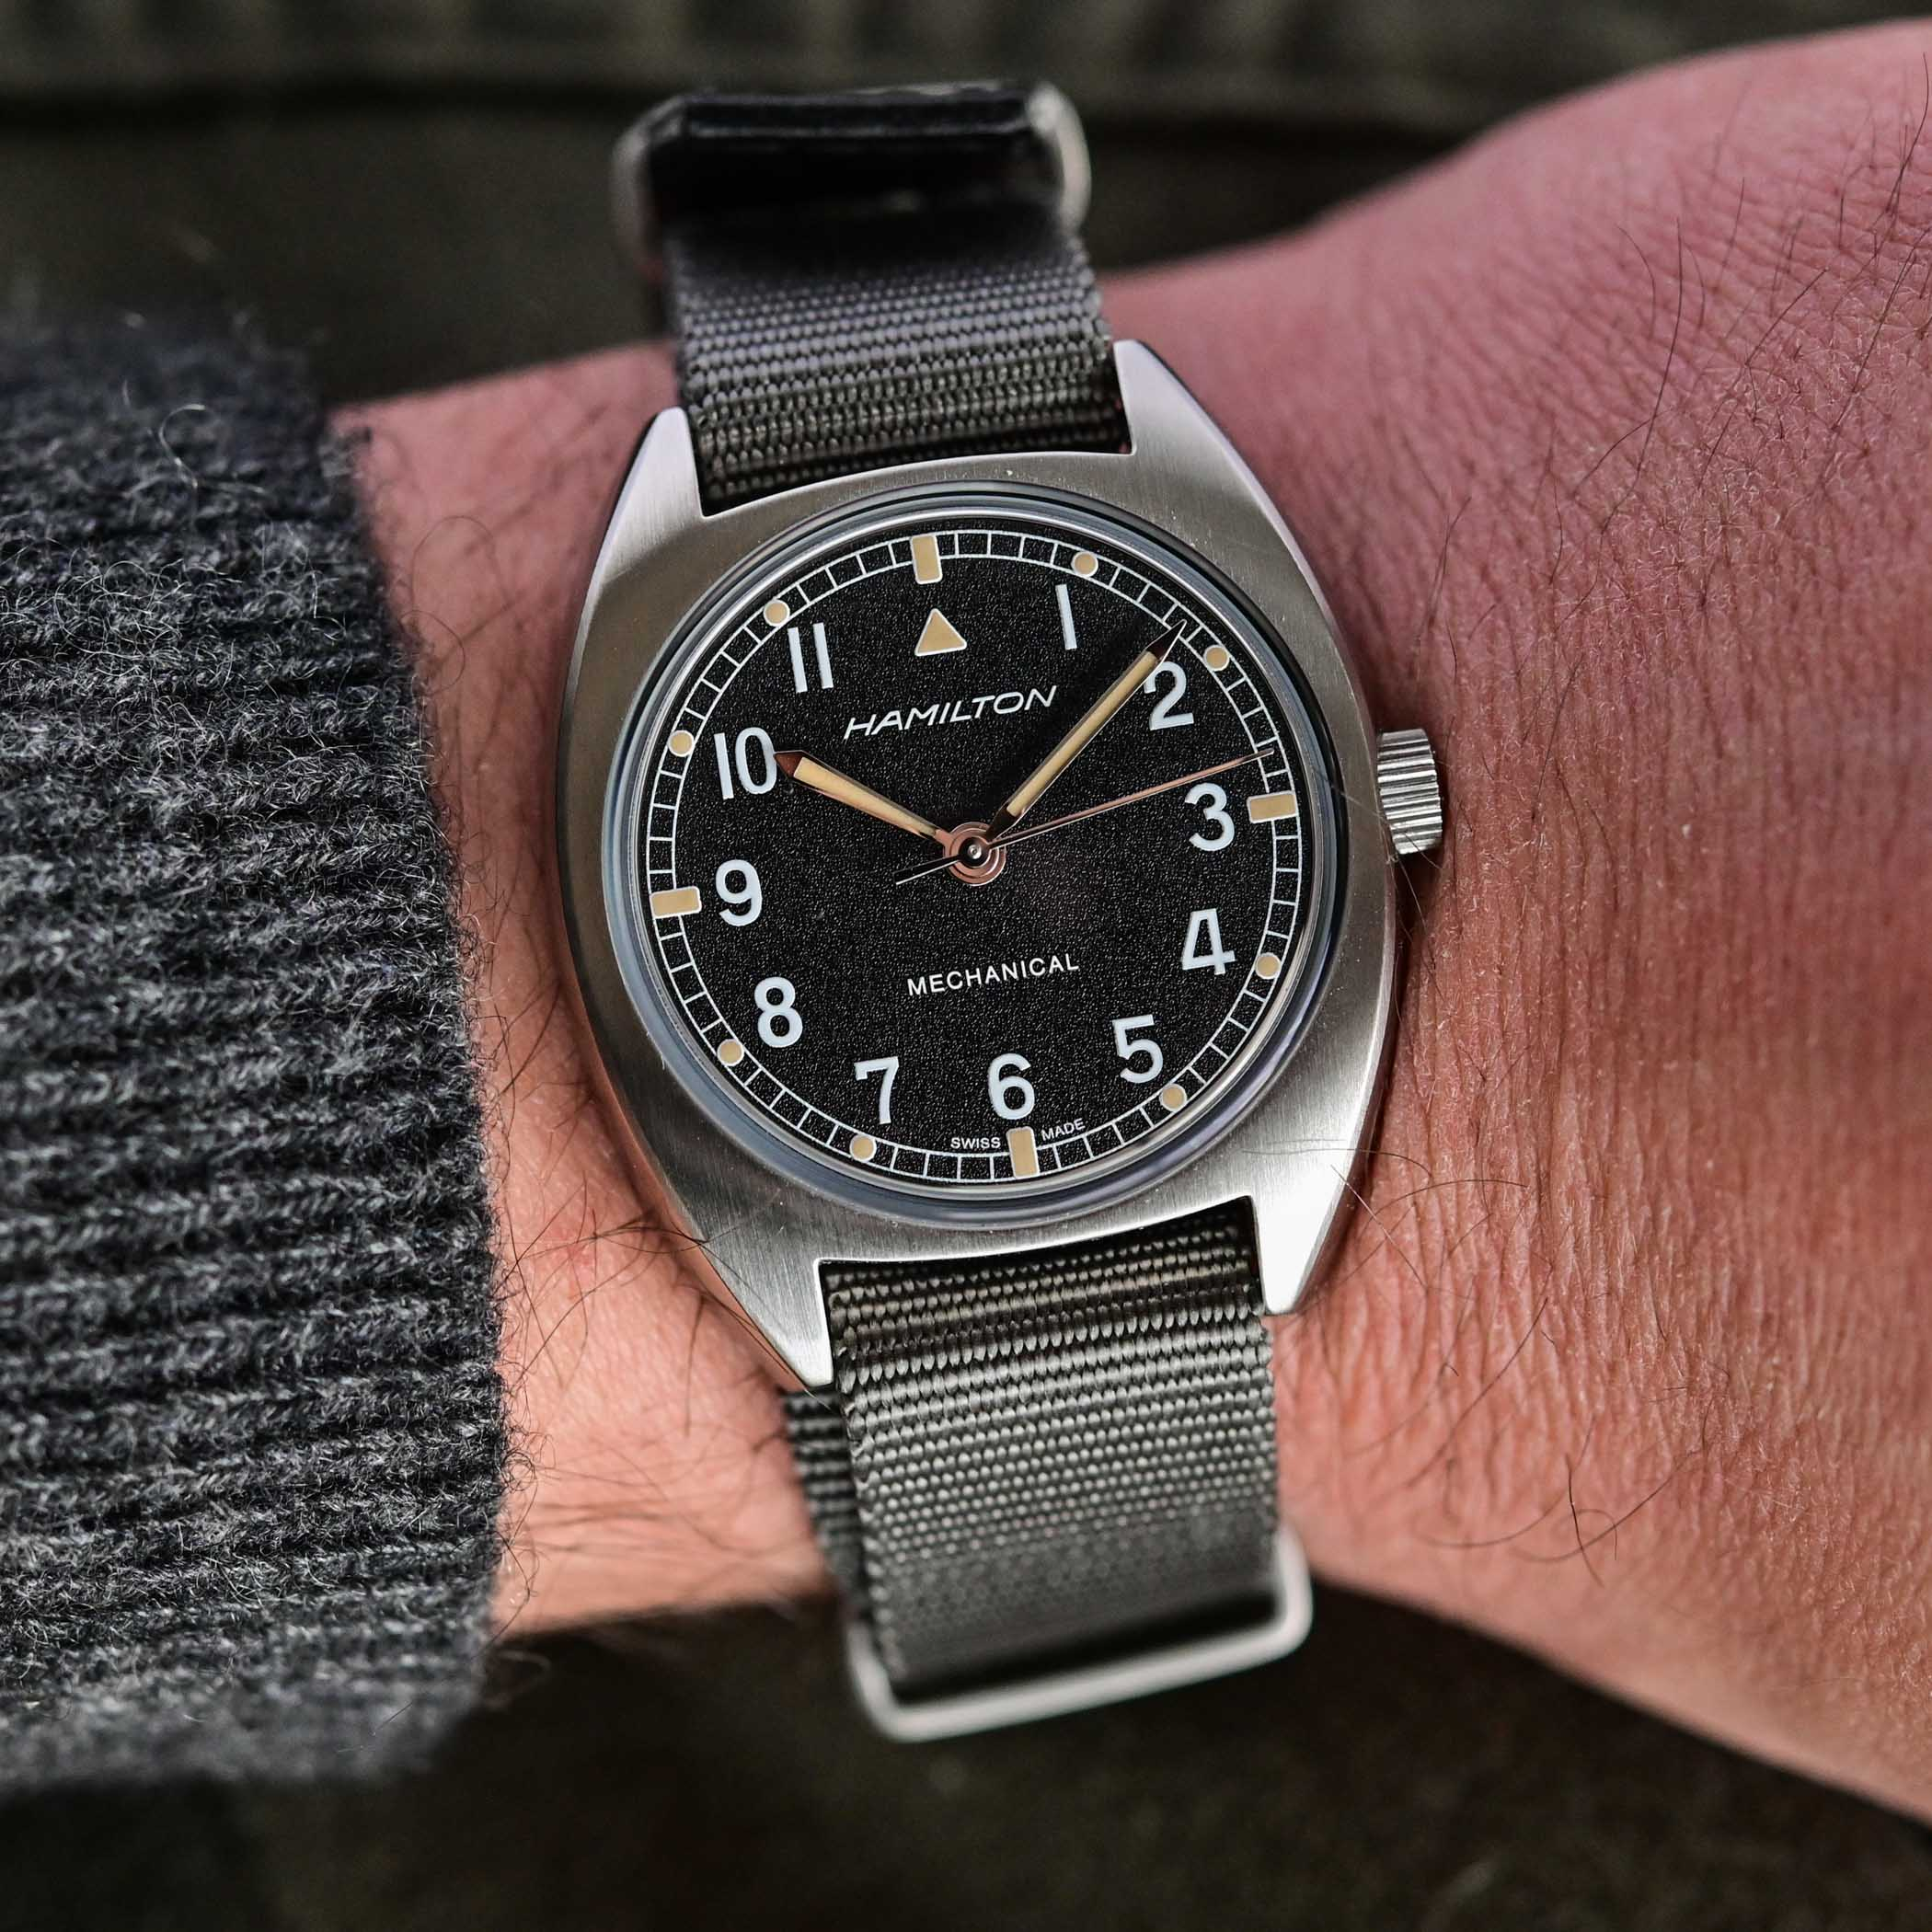 battle of accessible British military-inspired watches - comparative review Hamilton Khaki Pilot Pioneer Mechanical versus Timor Heritage Field - 1